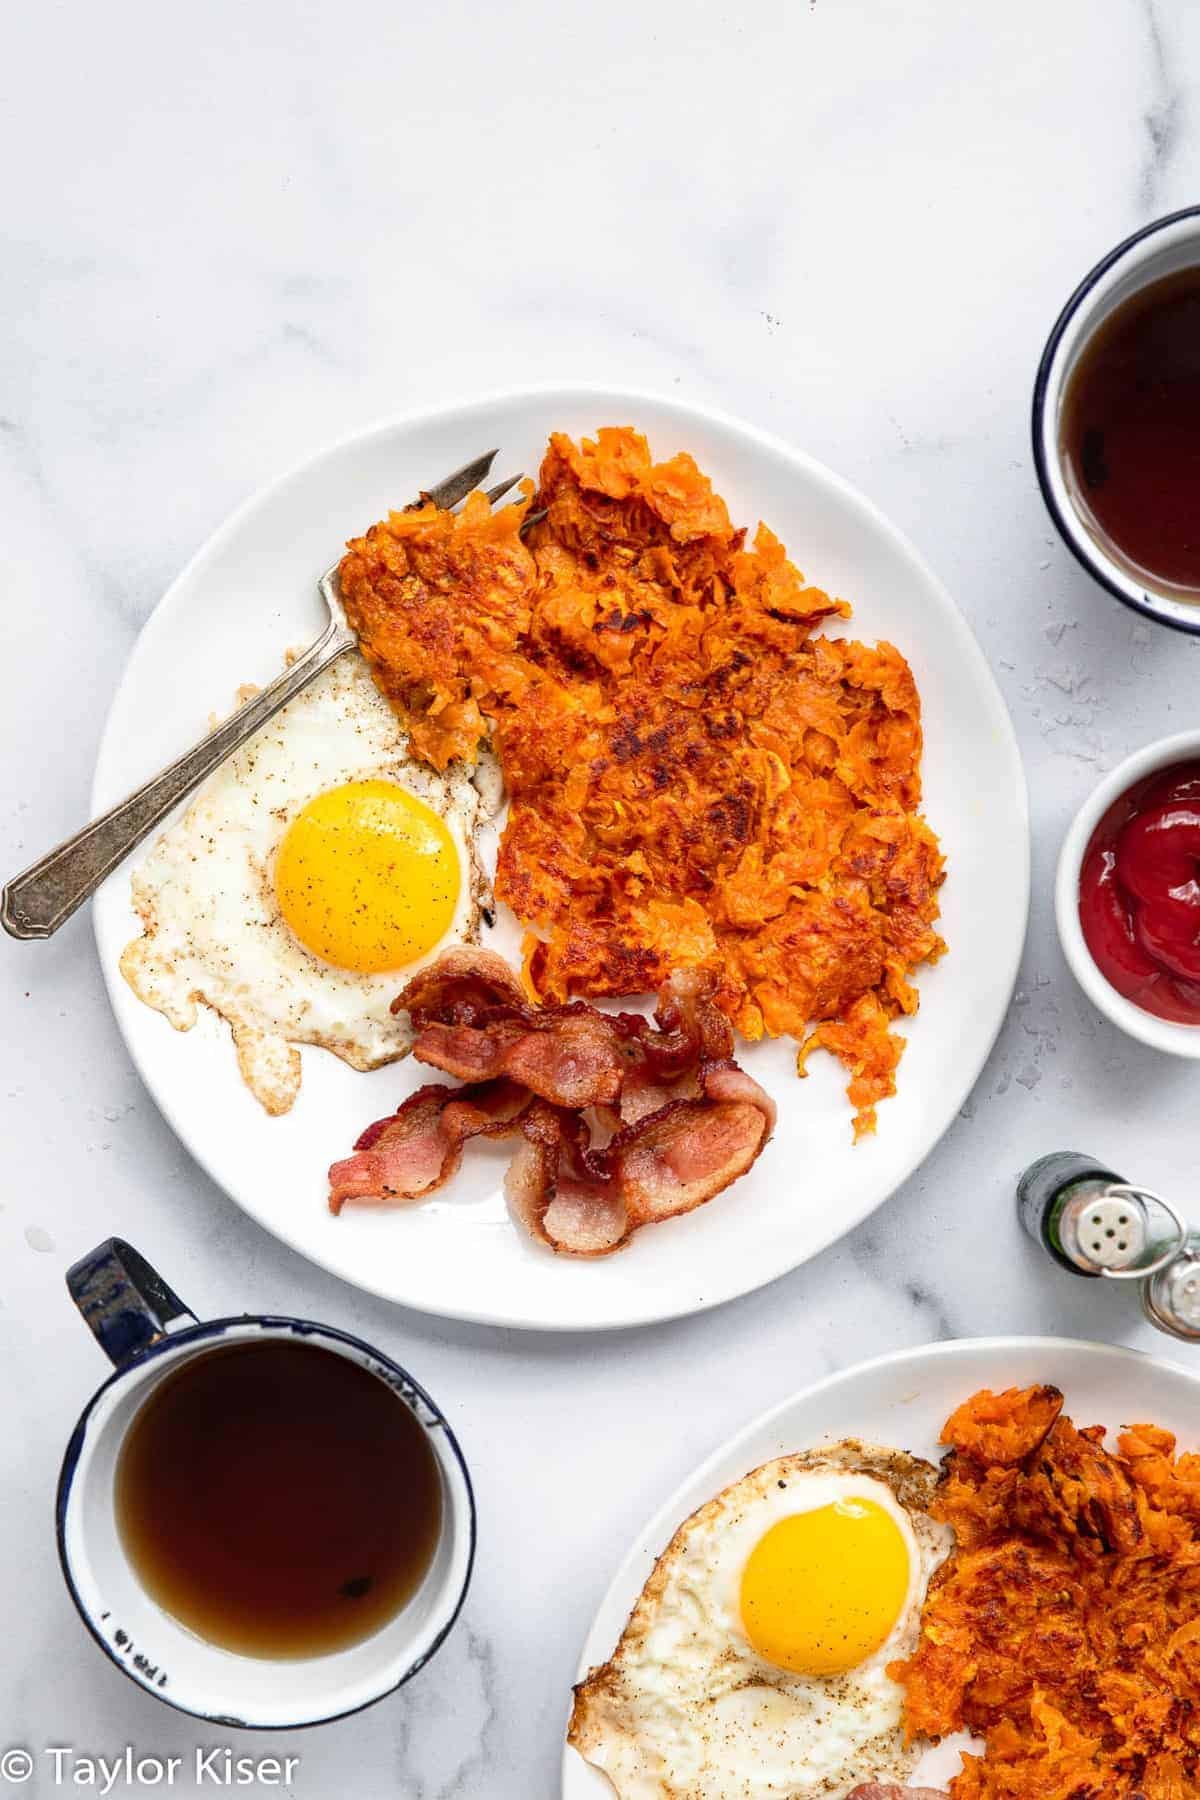 sweet potato hash browns on a plate with bacon and eggs